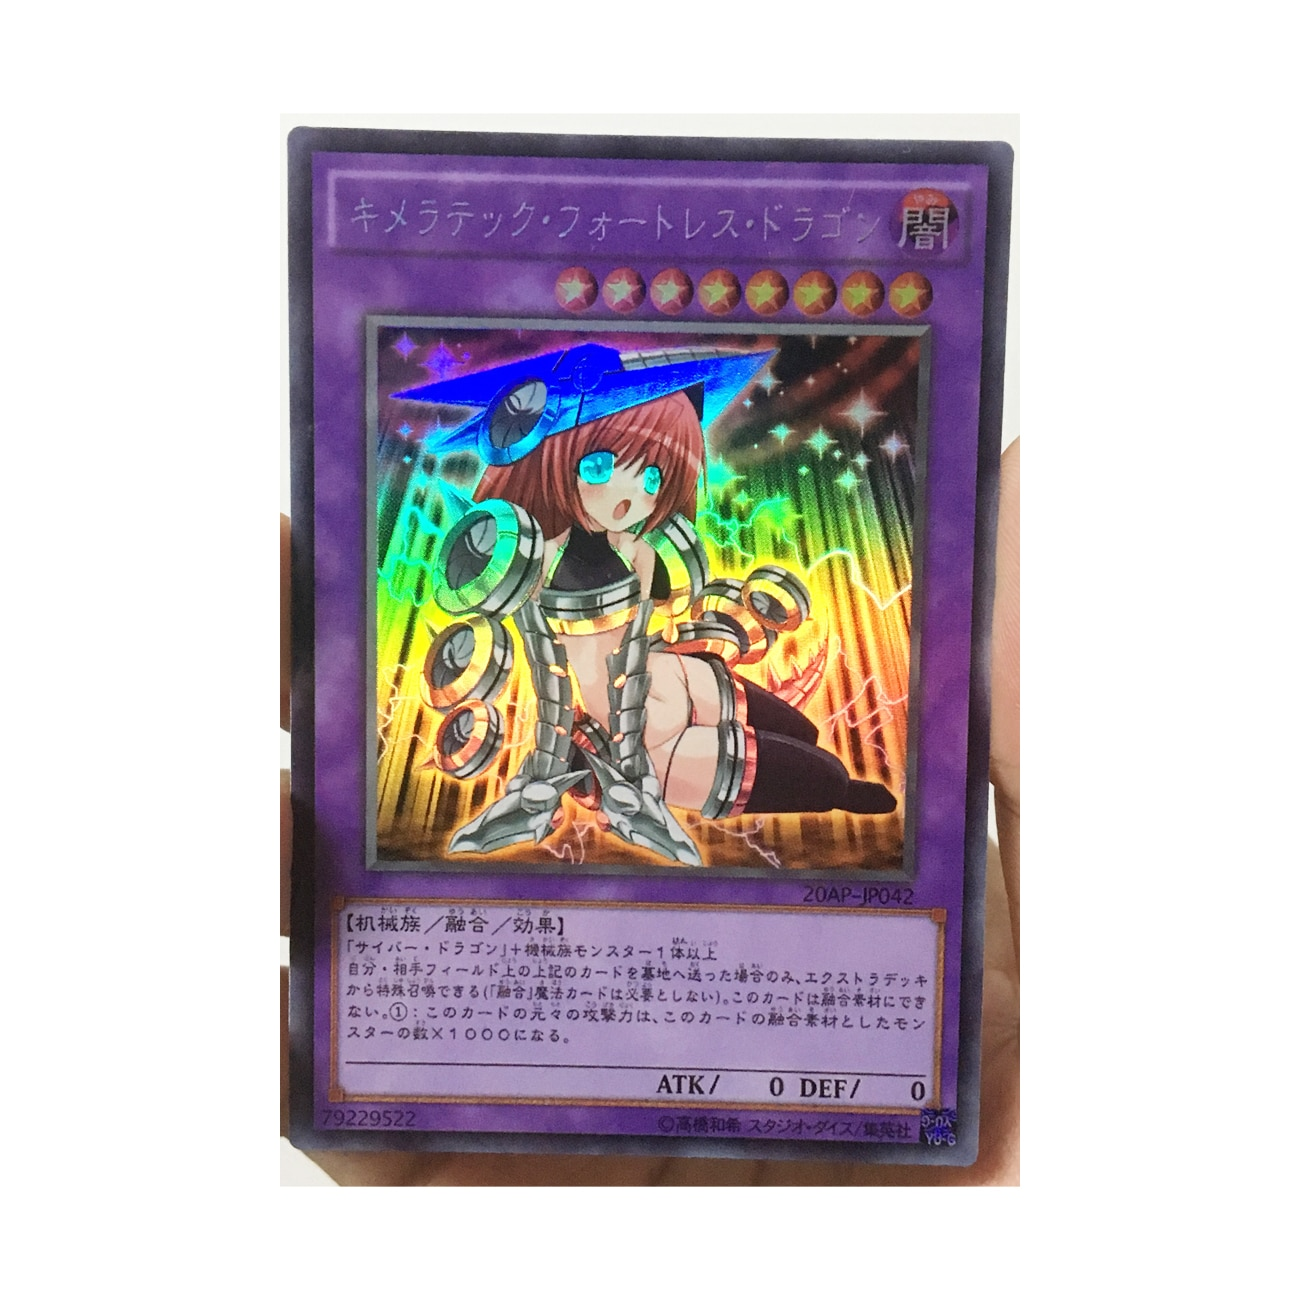 Yu Gi Oh Chimeratech Fortress Dragon Girly Version Japanese DIY Toys Hobbies Hobby Collectibles Game